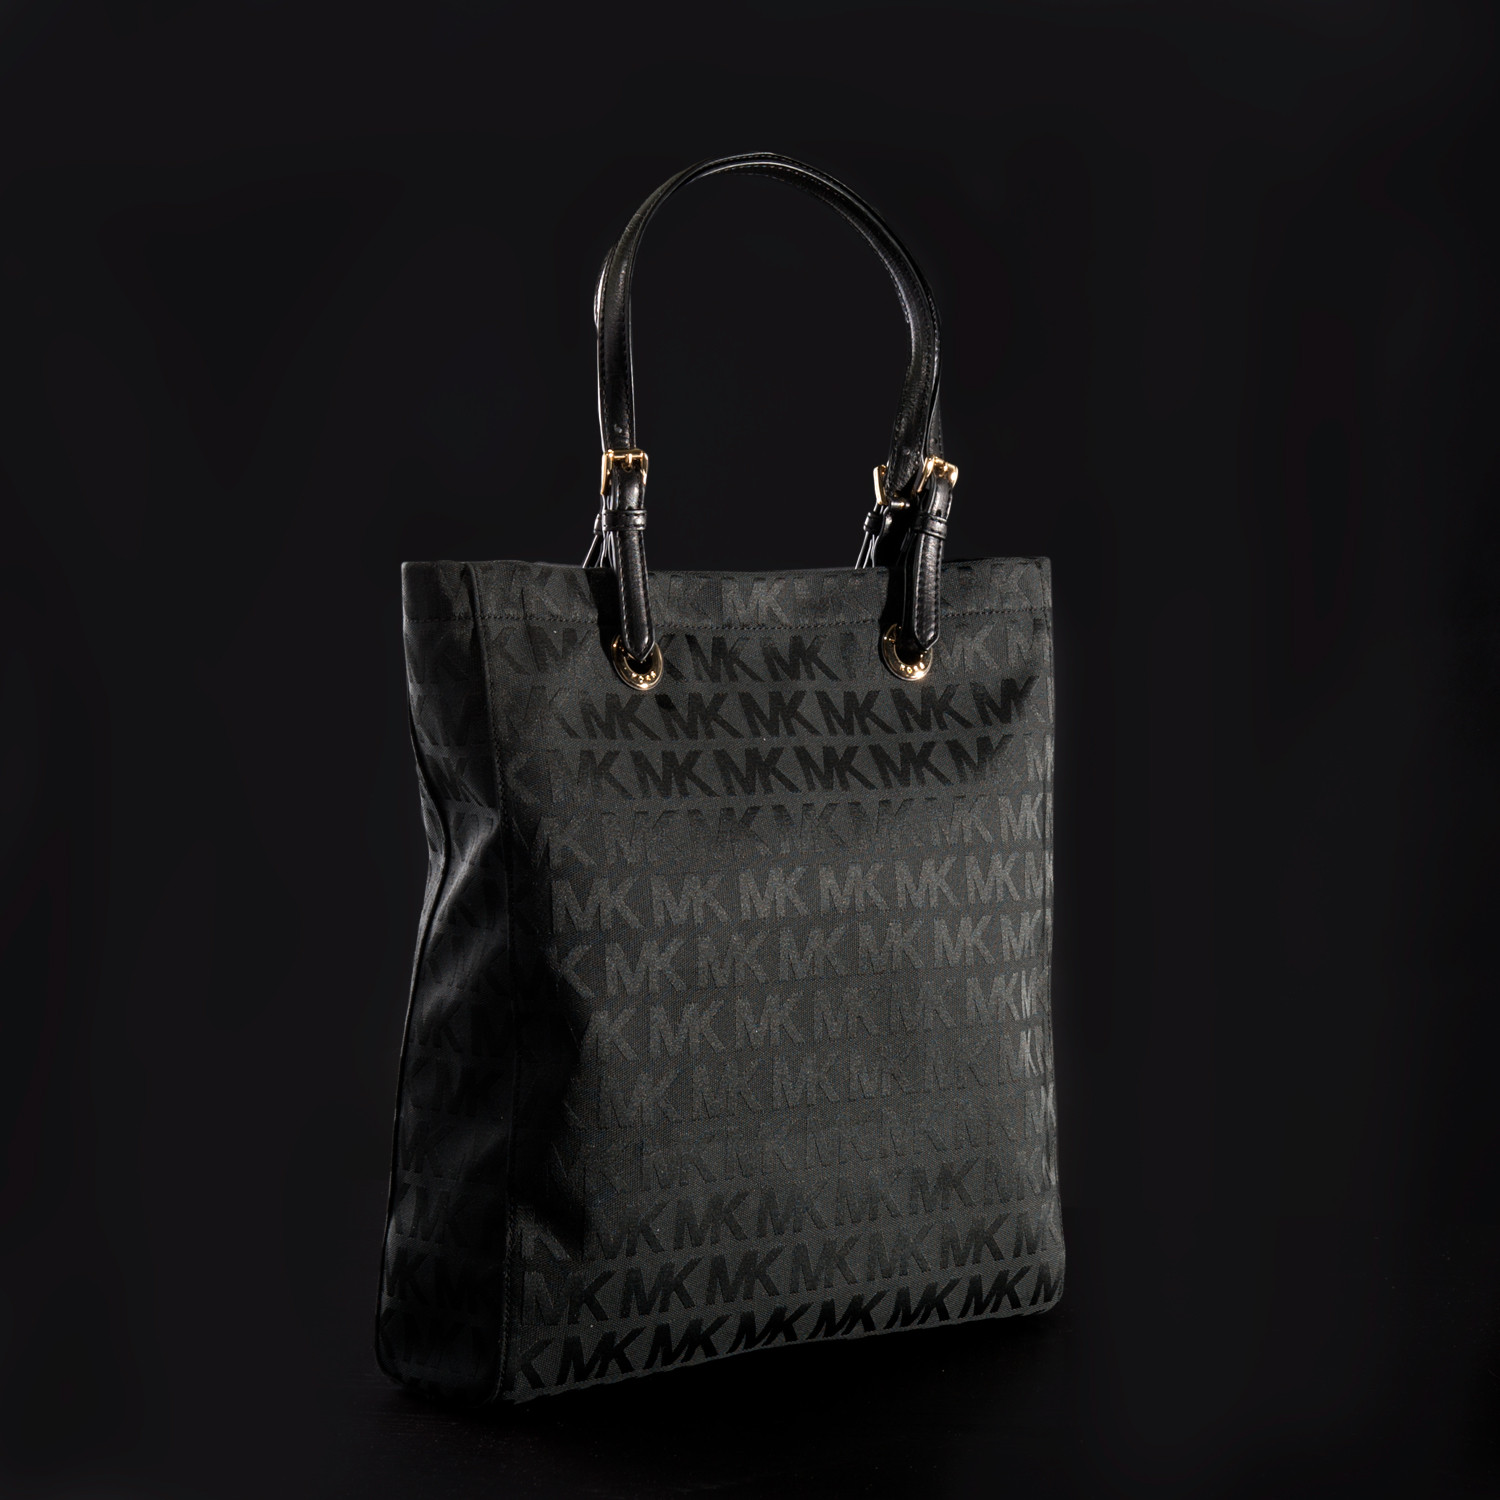 82440d96be ... Signature Jacquard Jet Set Tote Black Michael Kors Jet Set North South  Tote in Beige